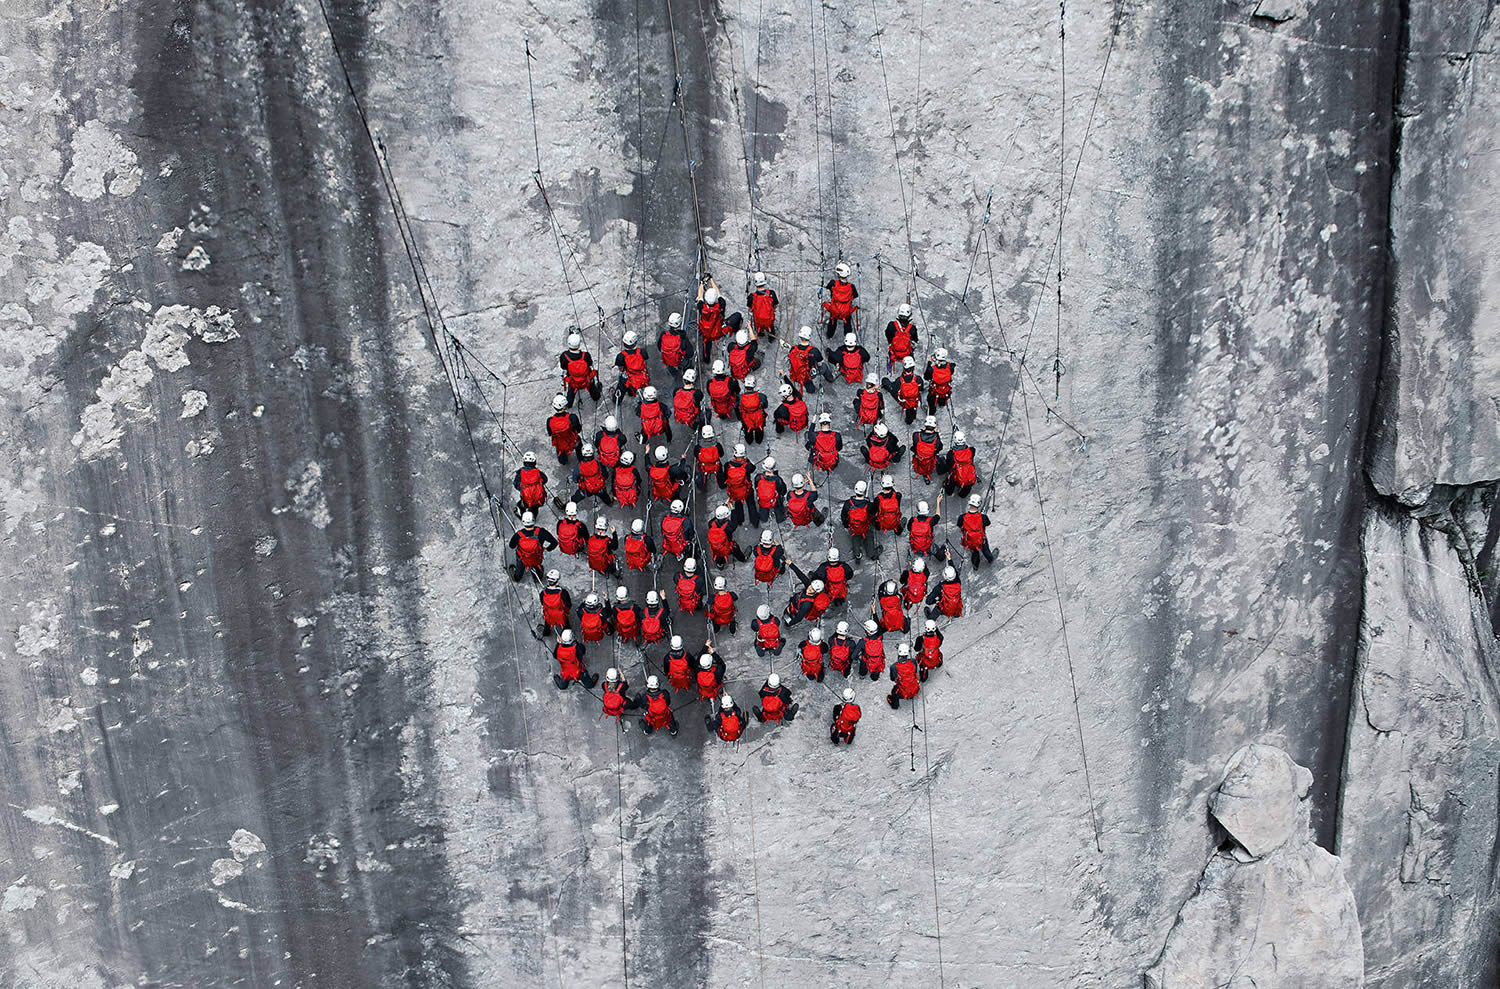 mountain climbers wearing red in a circle, photo by Robert Bösch mammut